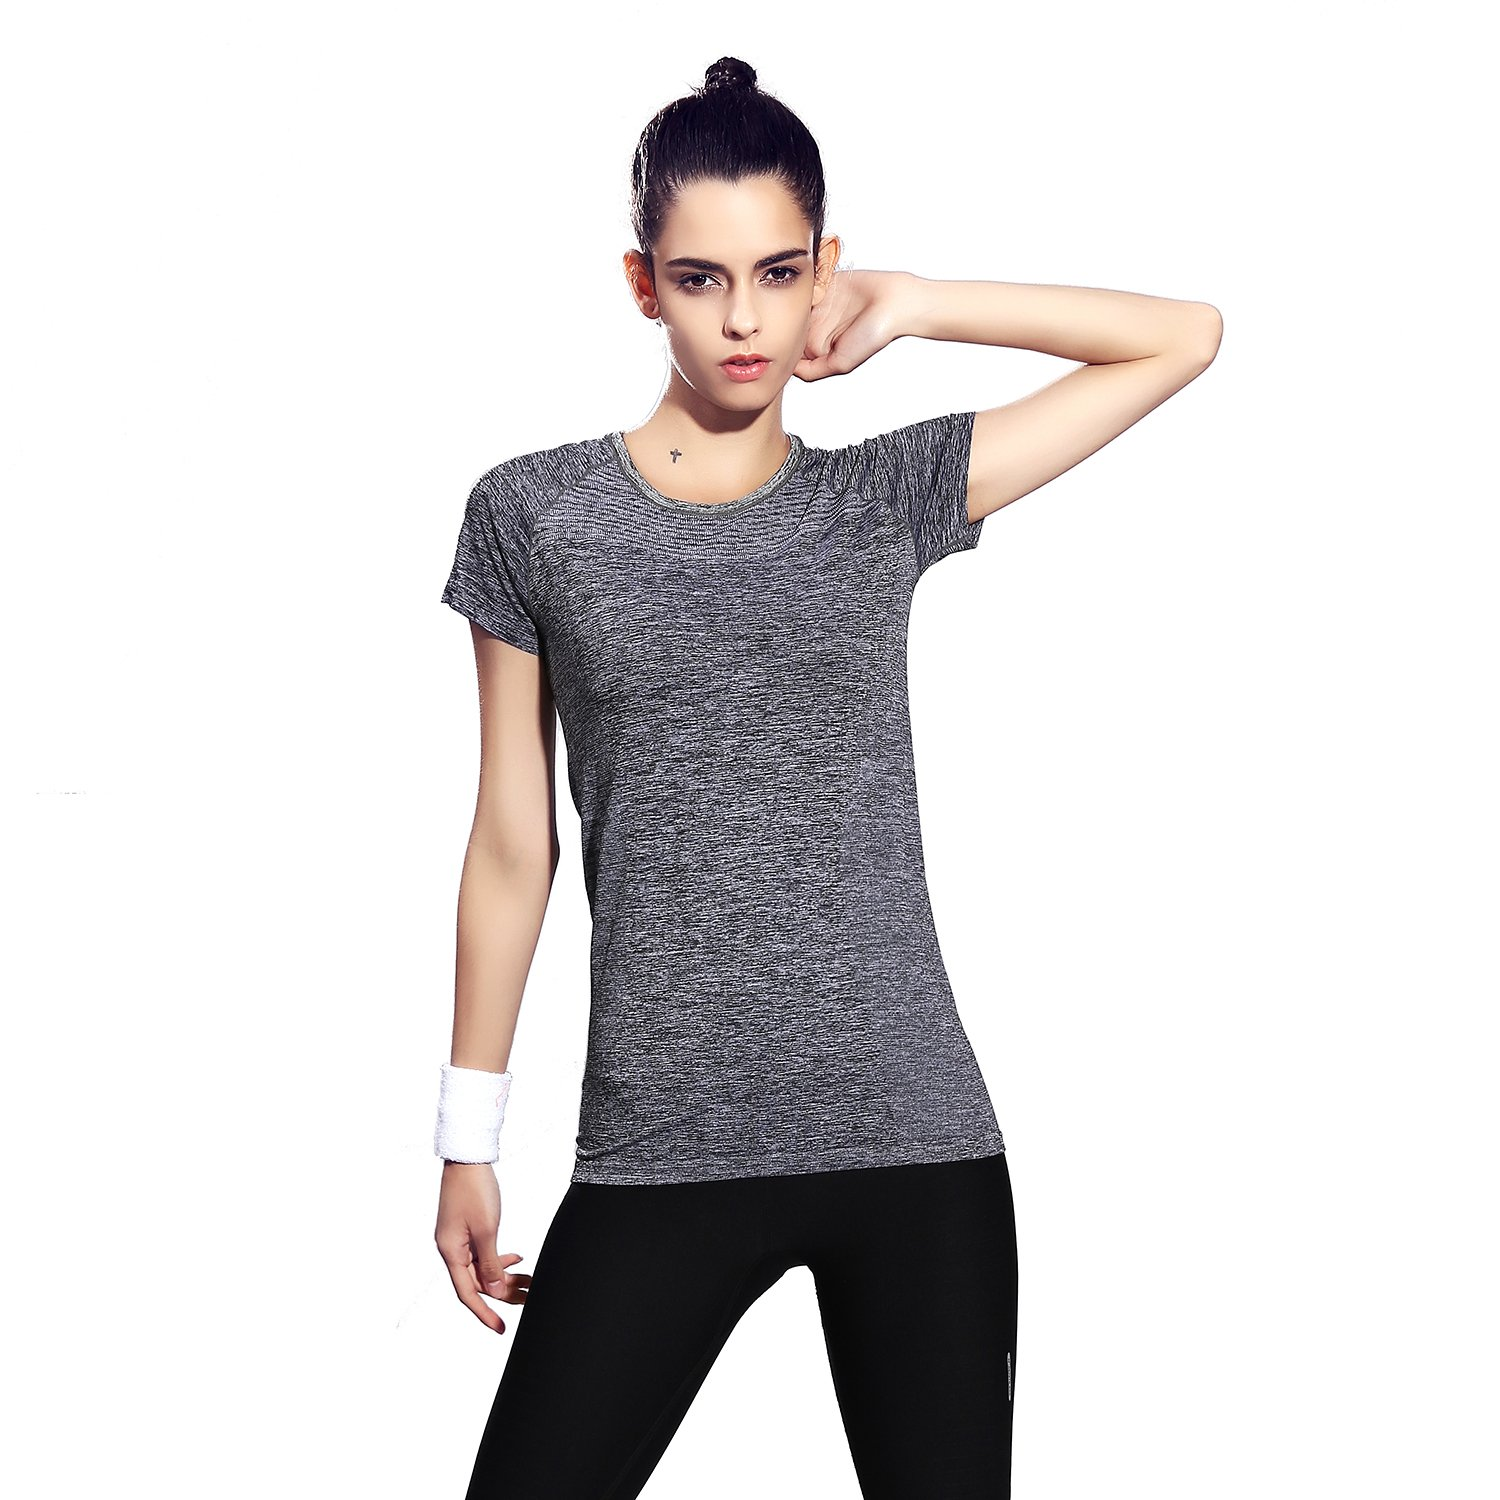 Amazon.com : HOTER Fitness Shirt Dry Fit Base Layer Yoga ...